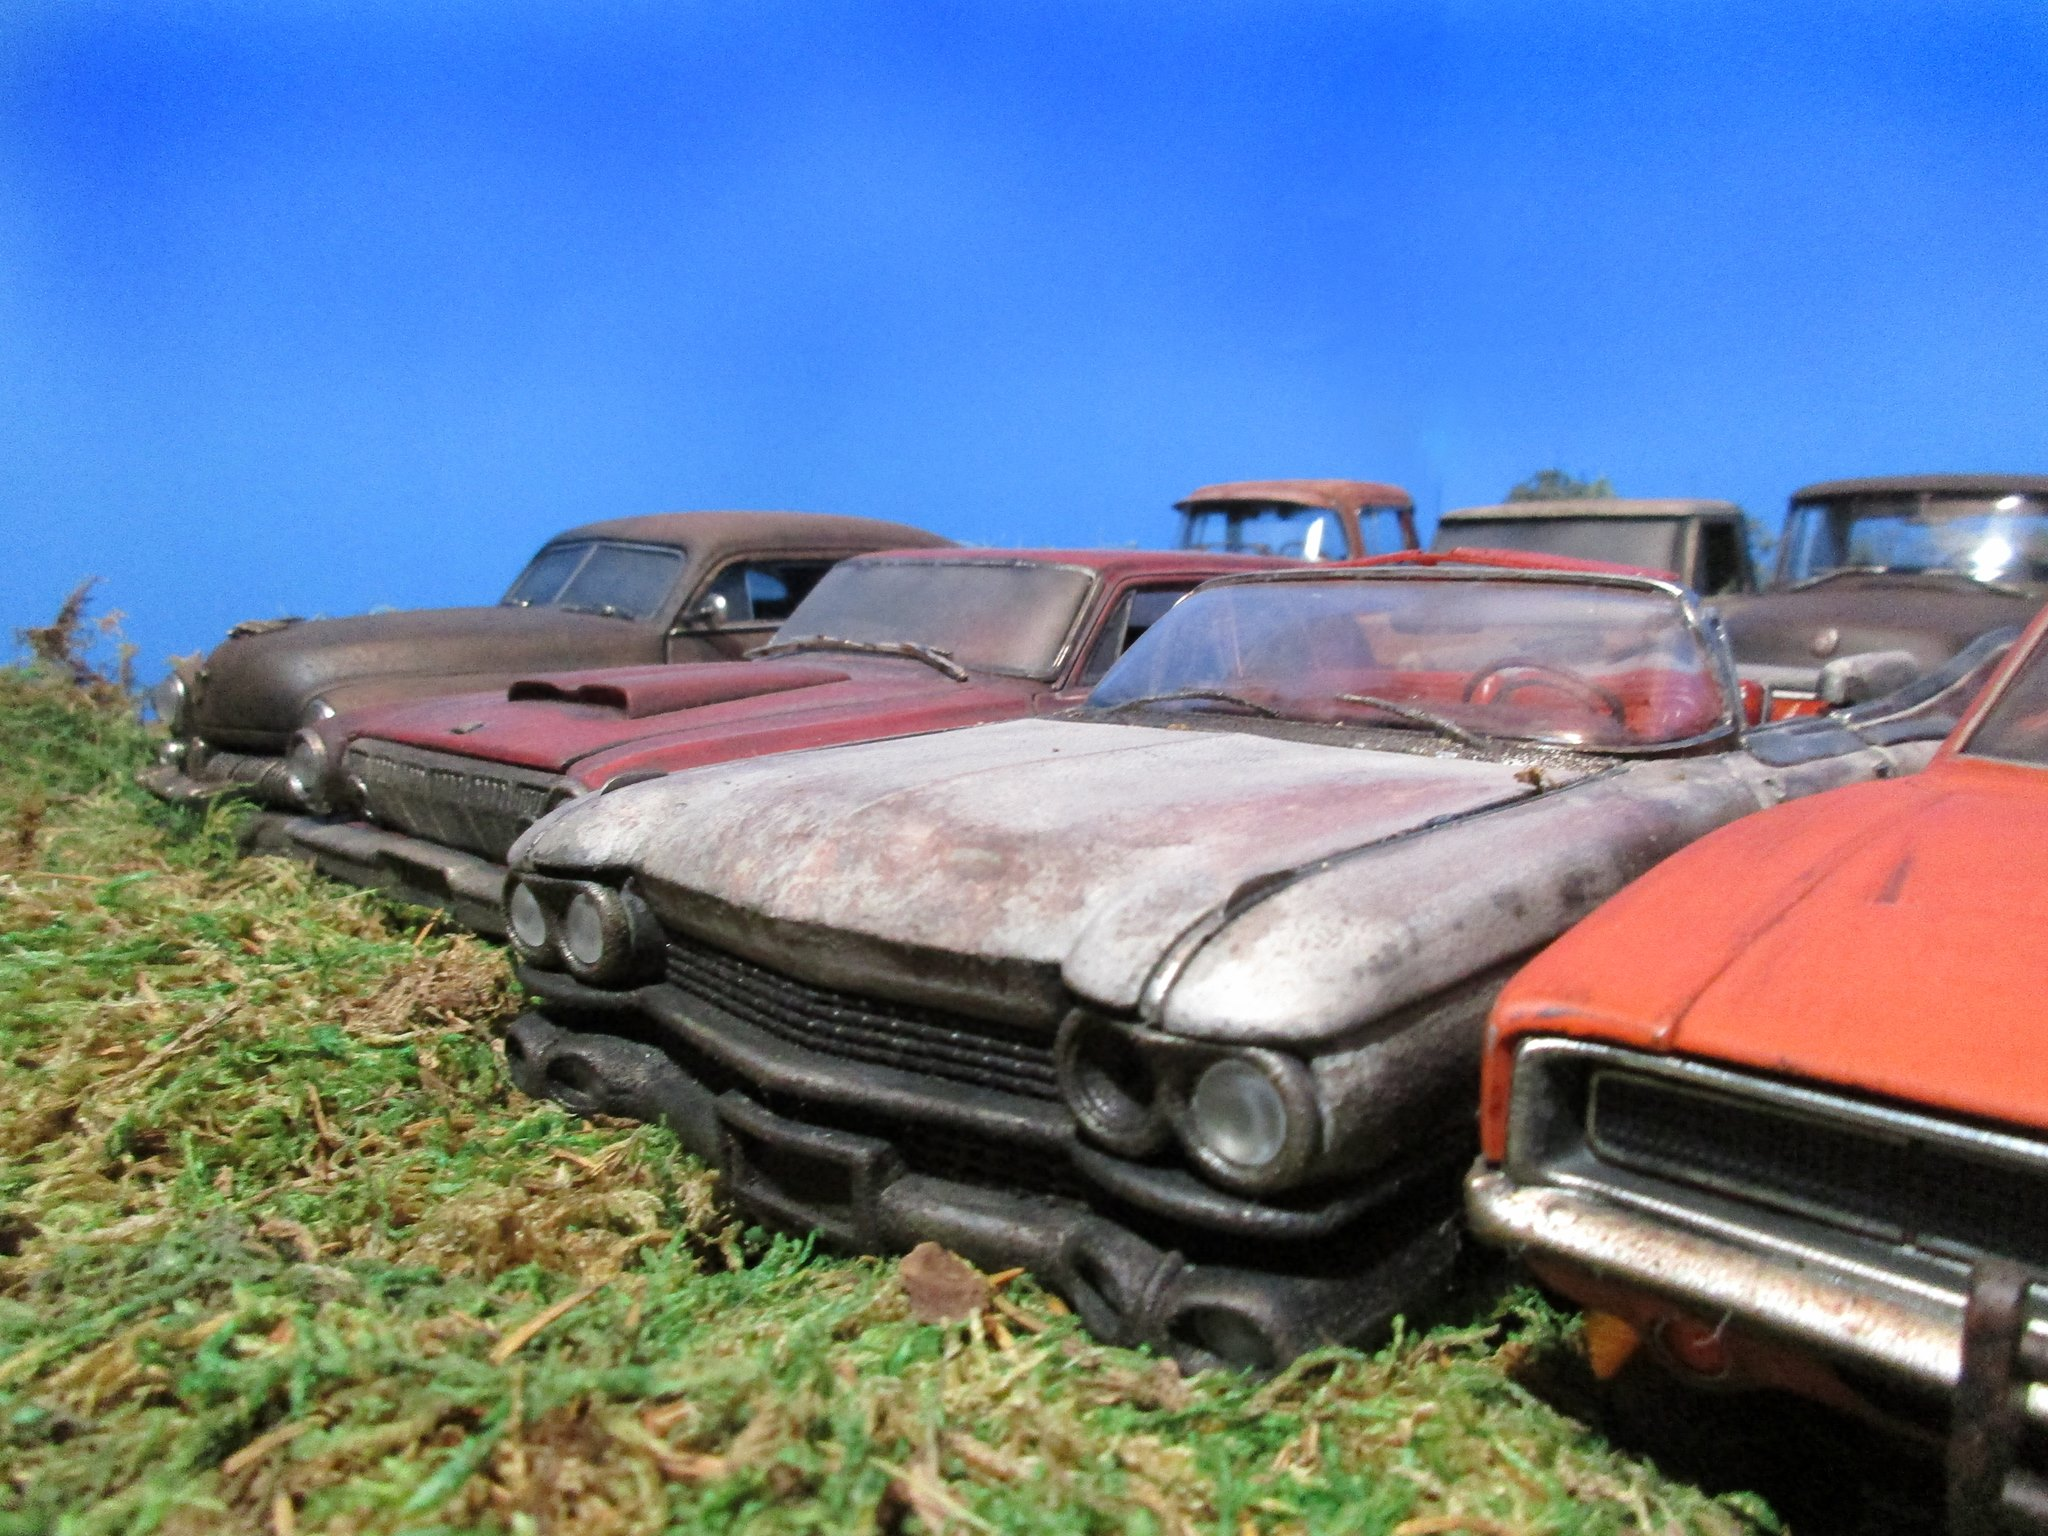 Toasted---Autos-Weathered-Die-Cast-Cars-2